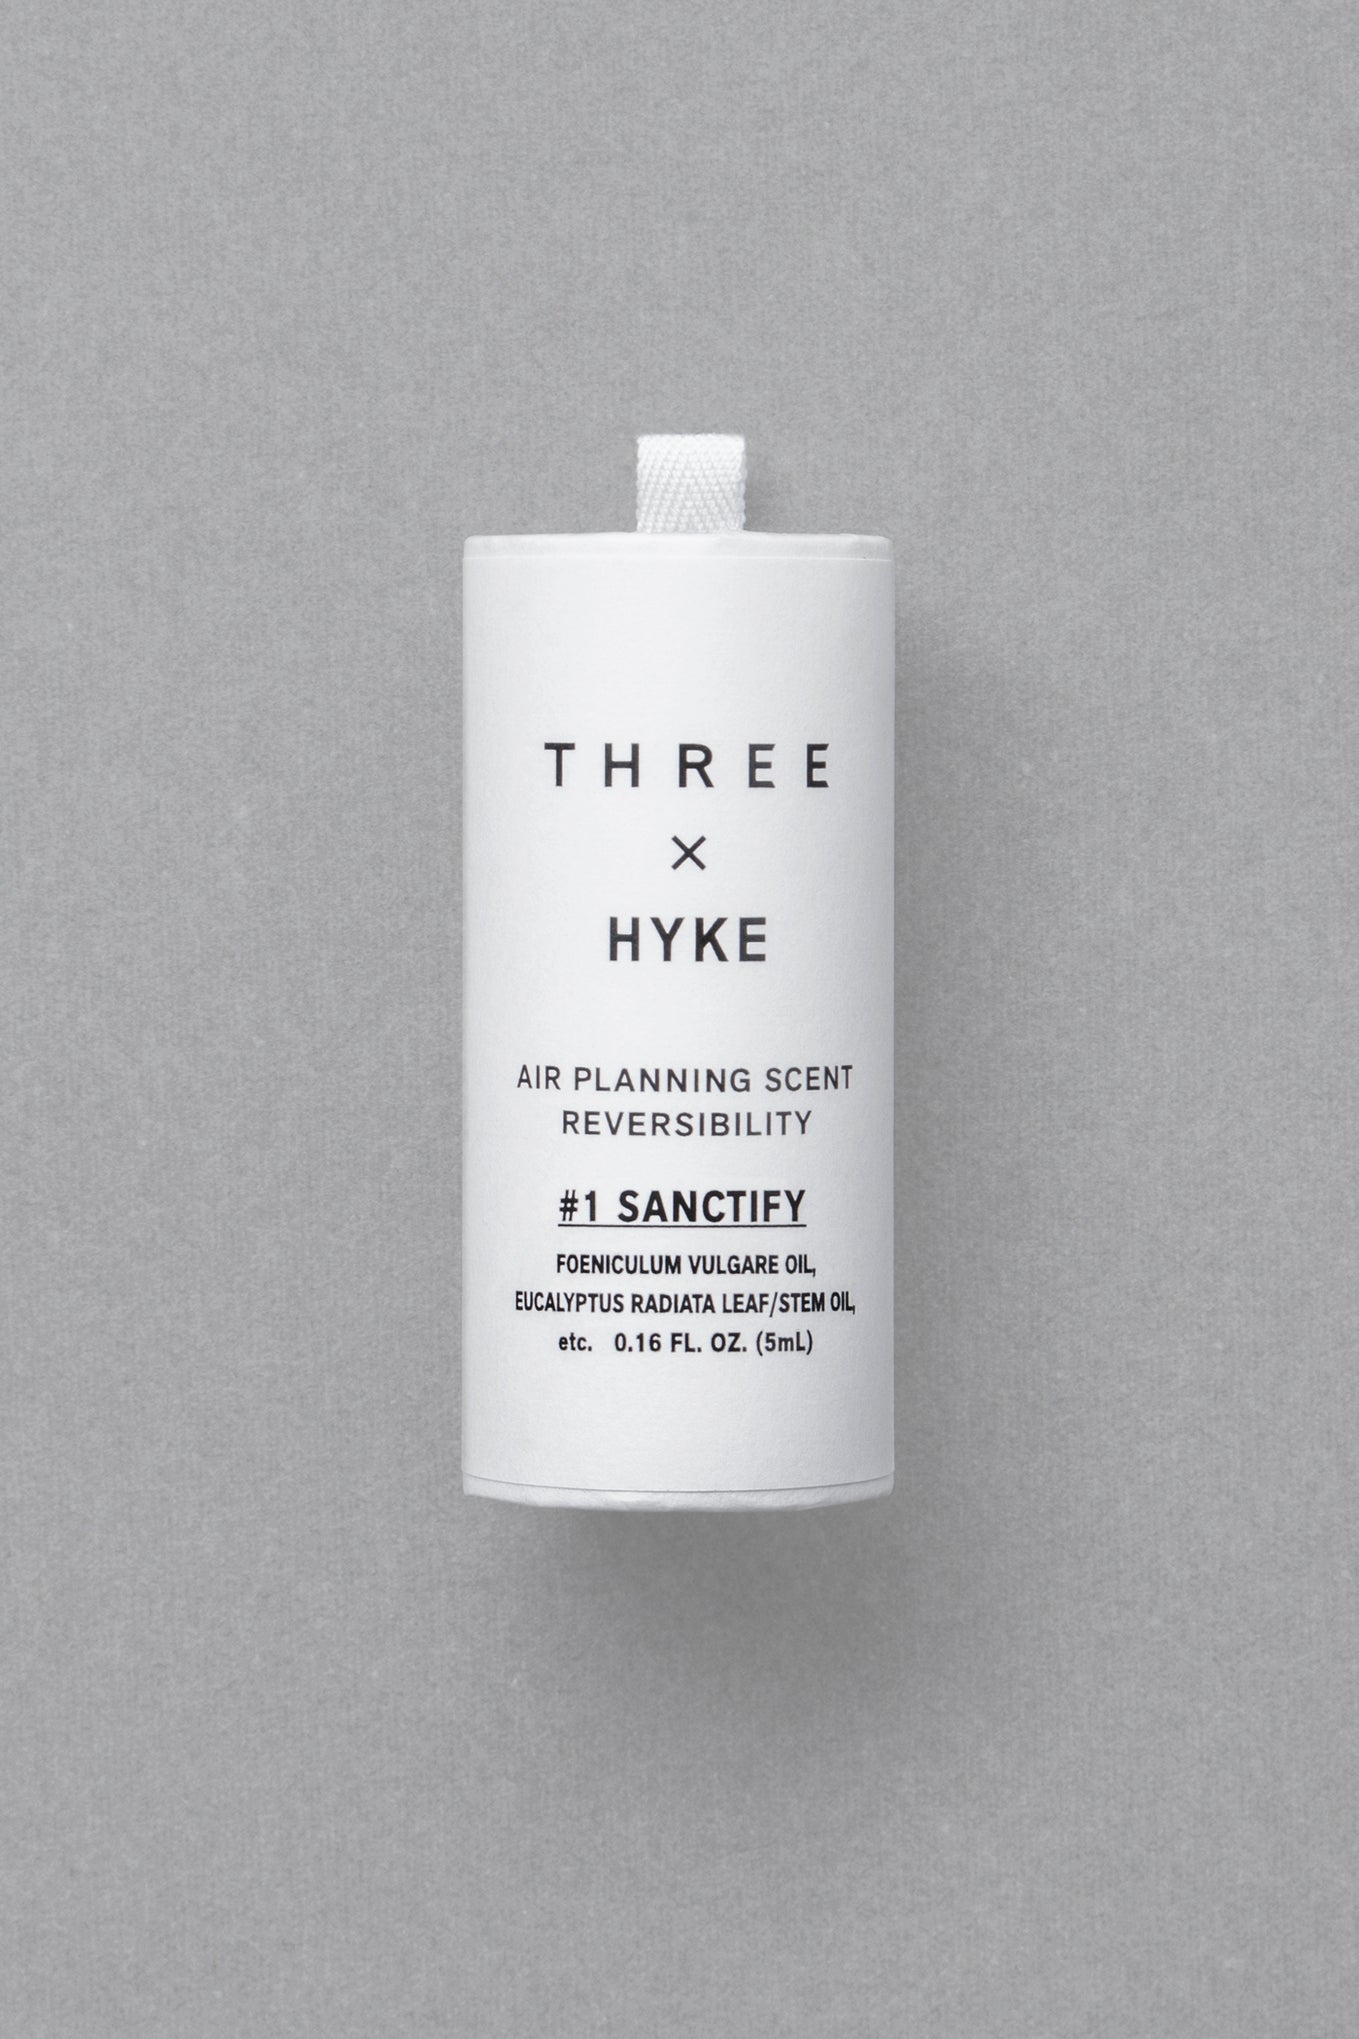 THREE × HYKE<br>AIR PLANNING SCENT REVERSIBILITY #1